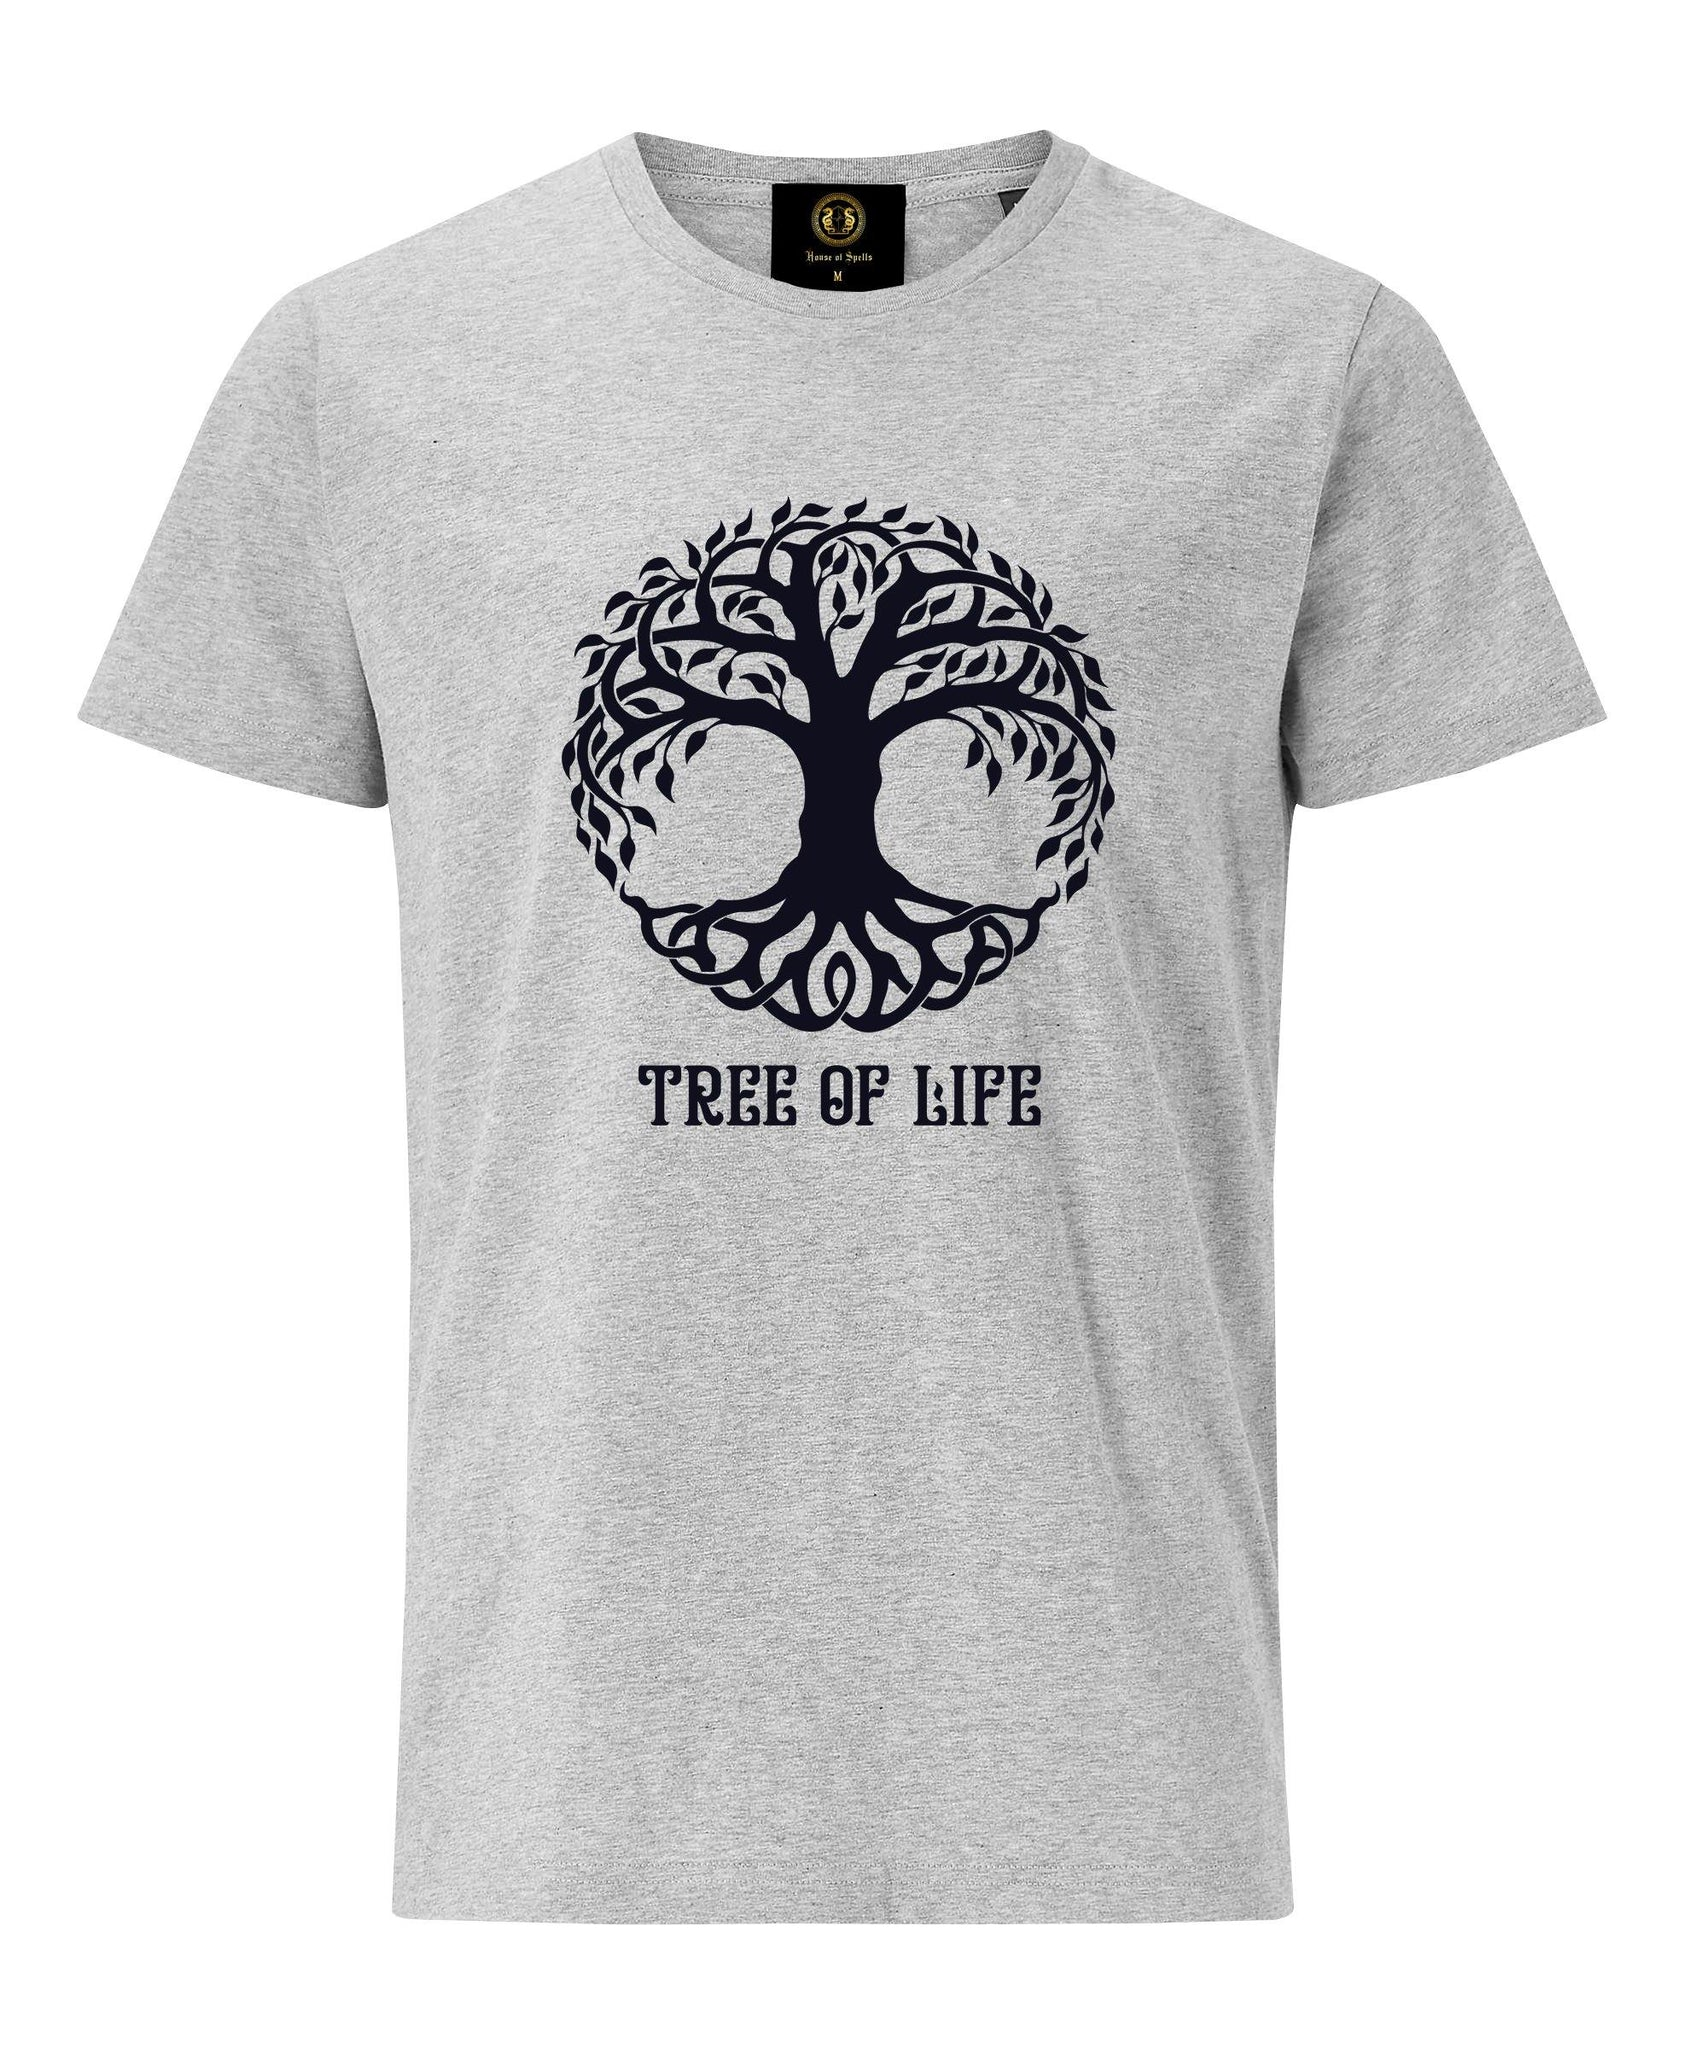 Tree of Life T-Shirt- Grey